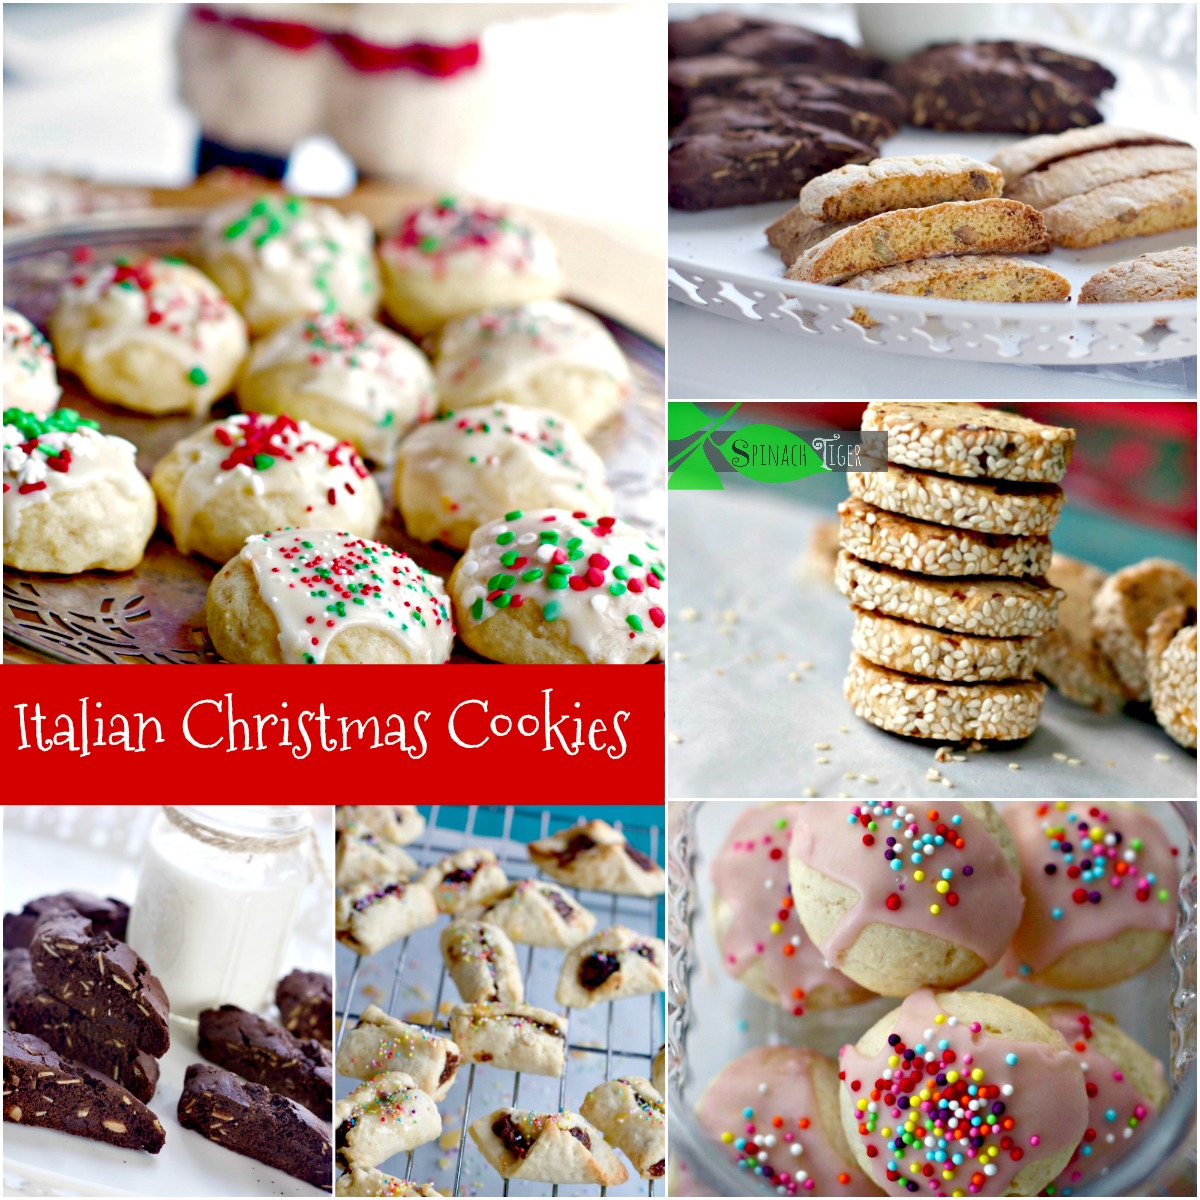 Italian Christmas Cookies from Spinach Tiger